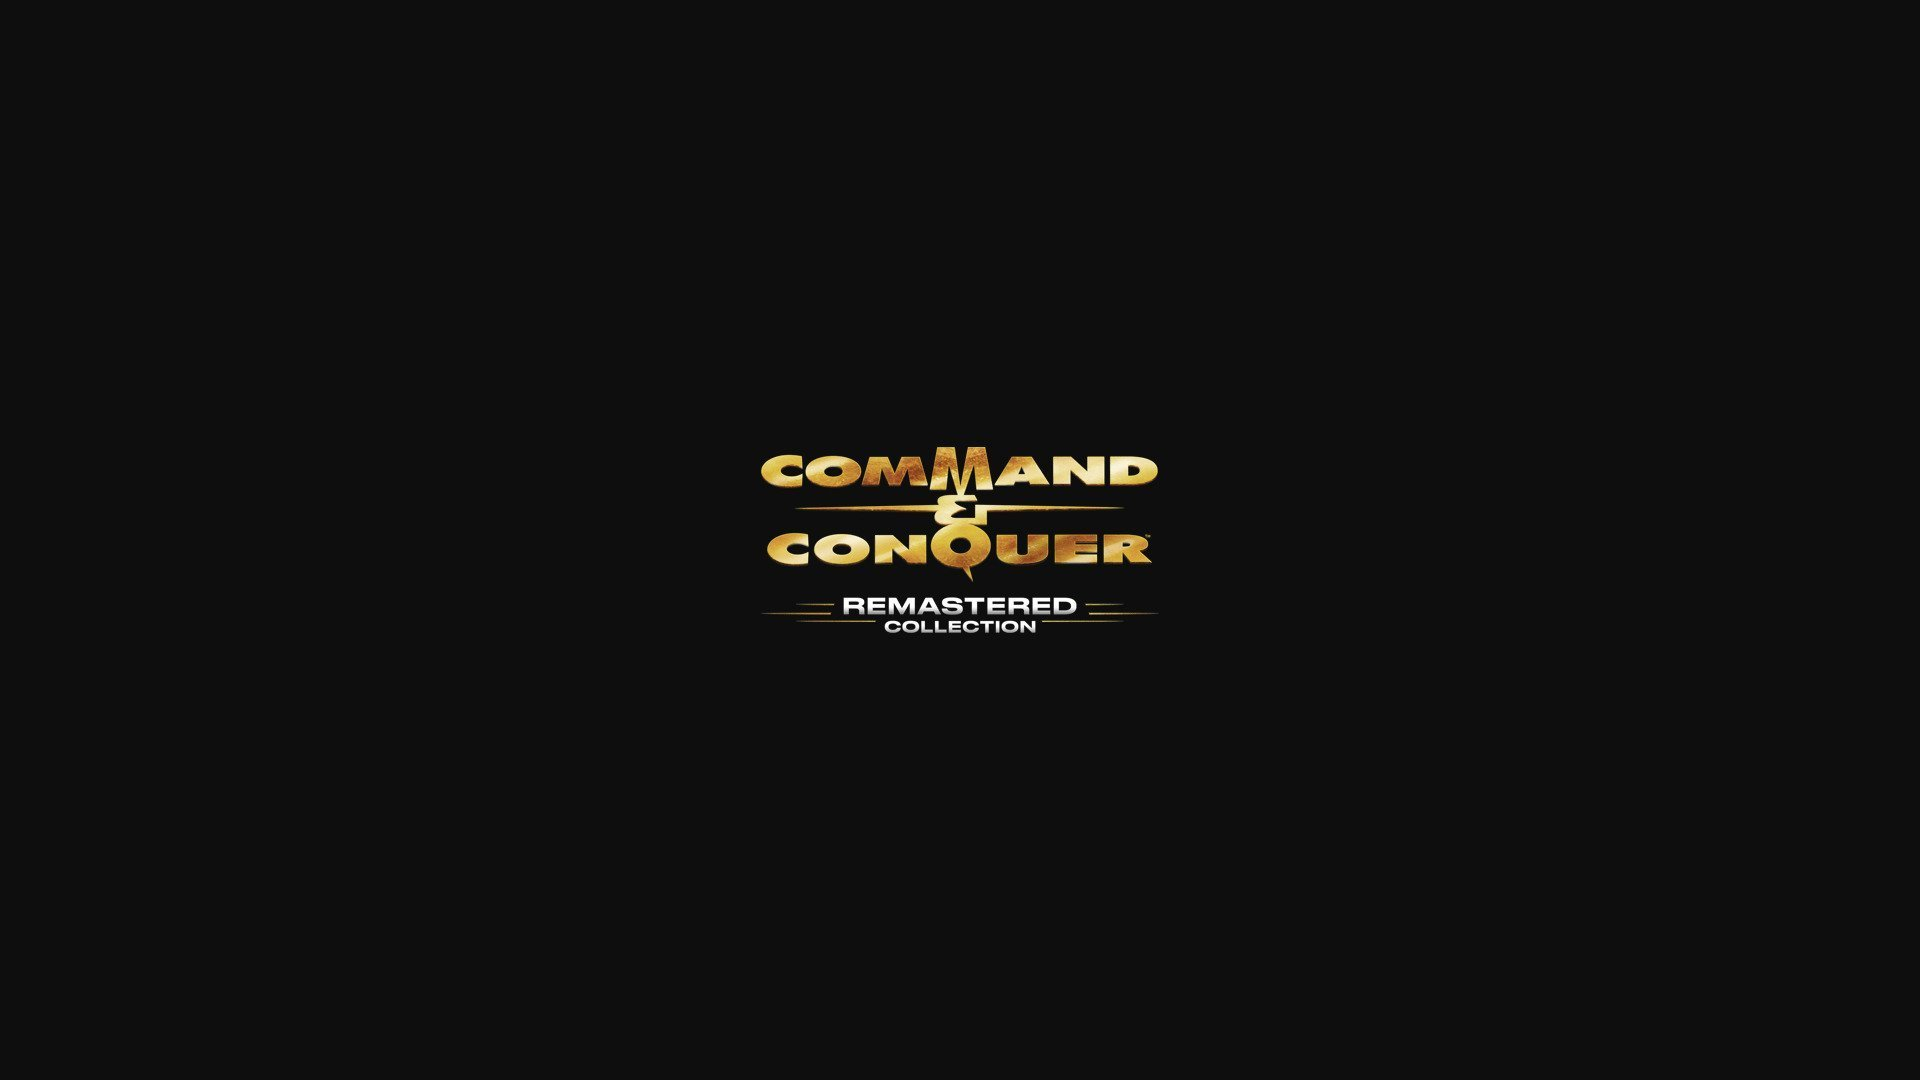 Command & Conquer Remastered Collections